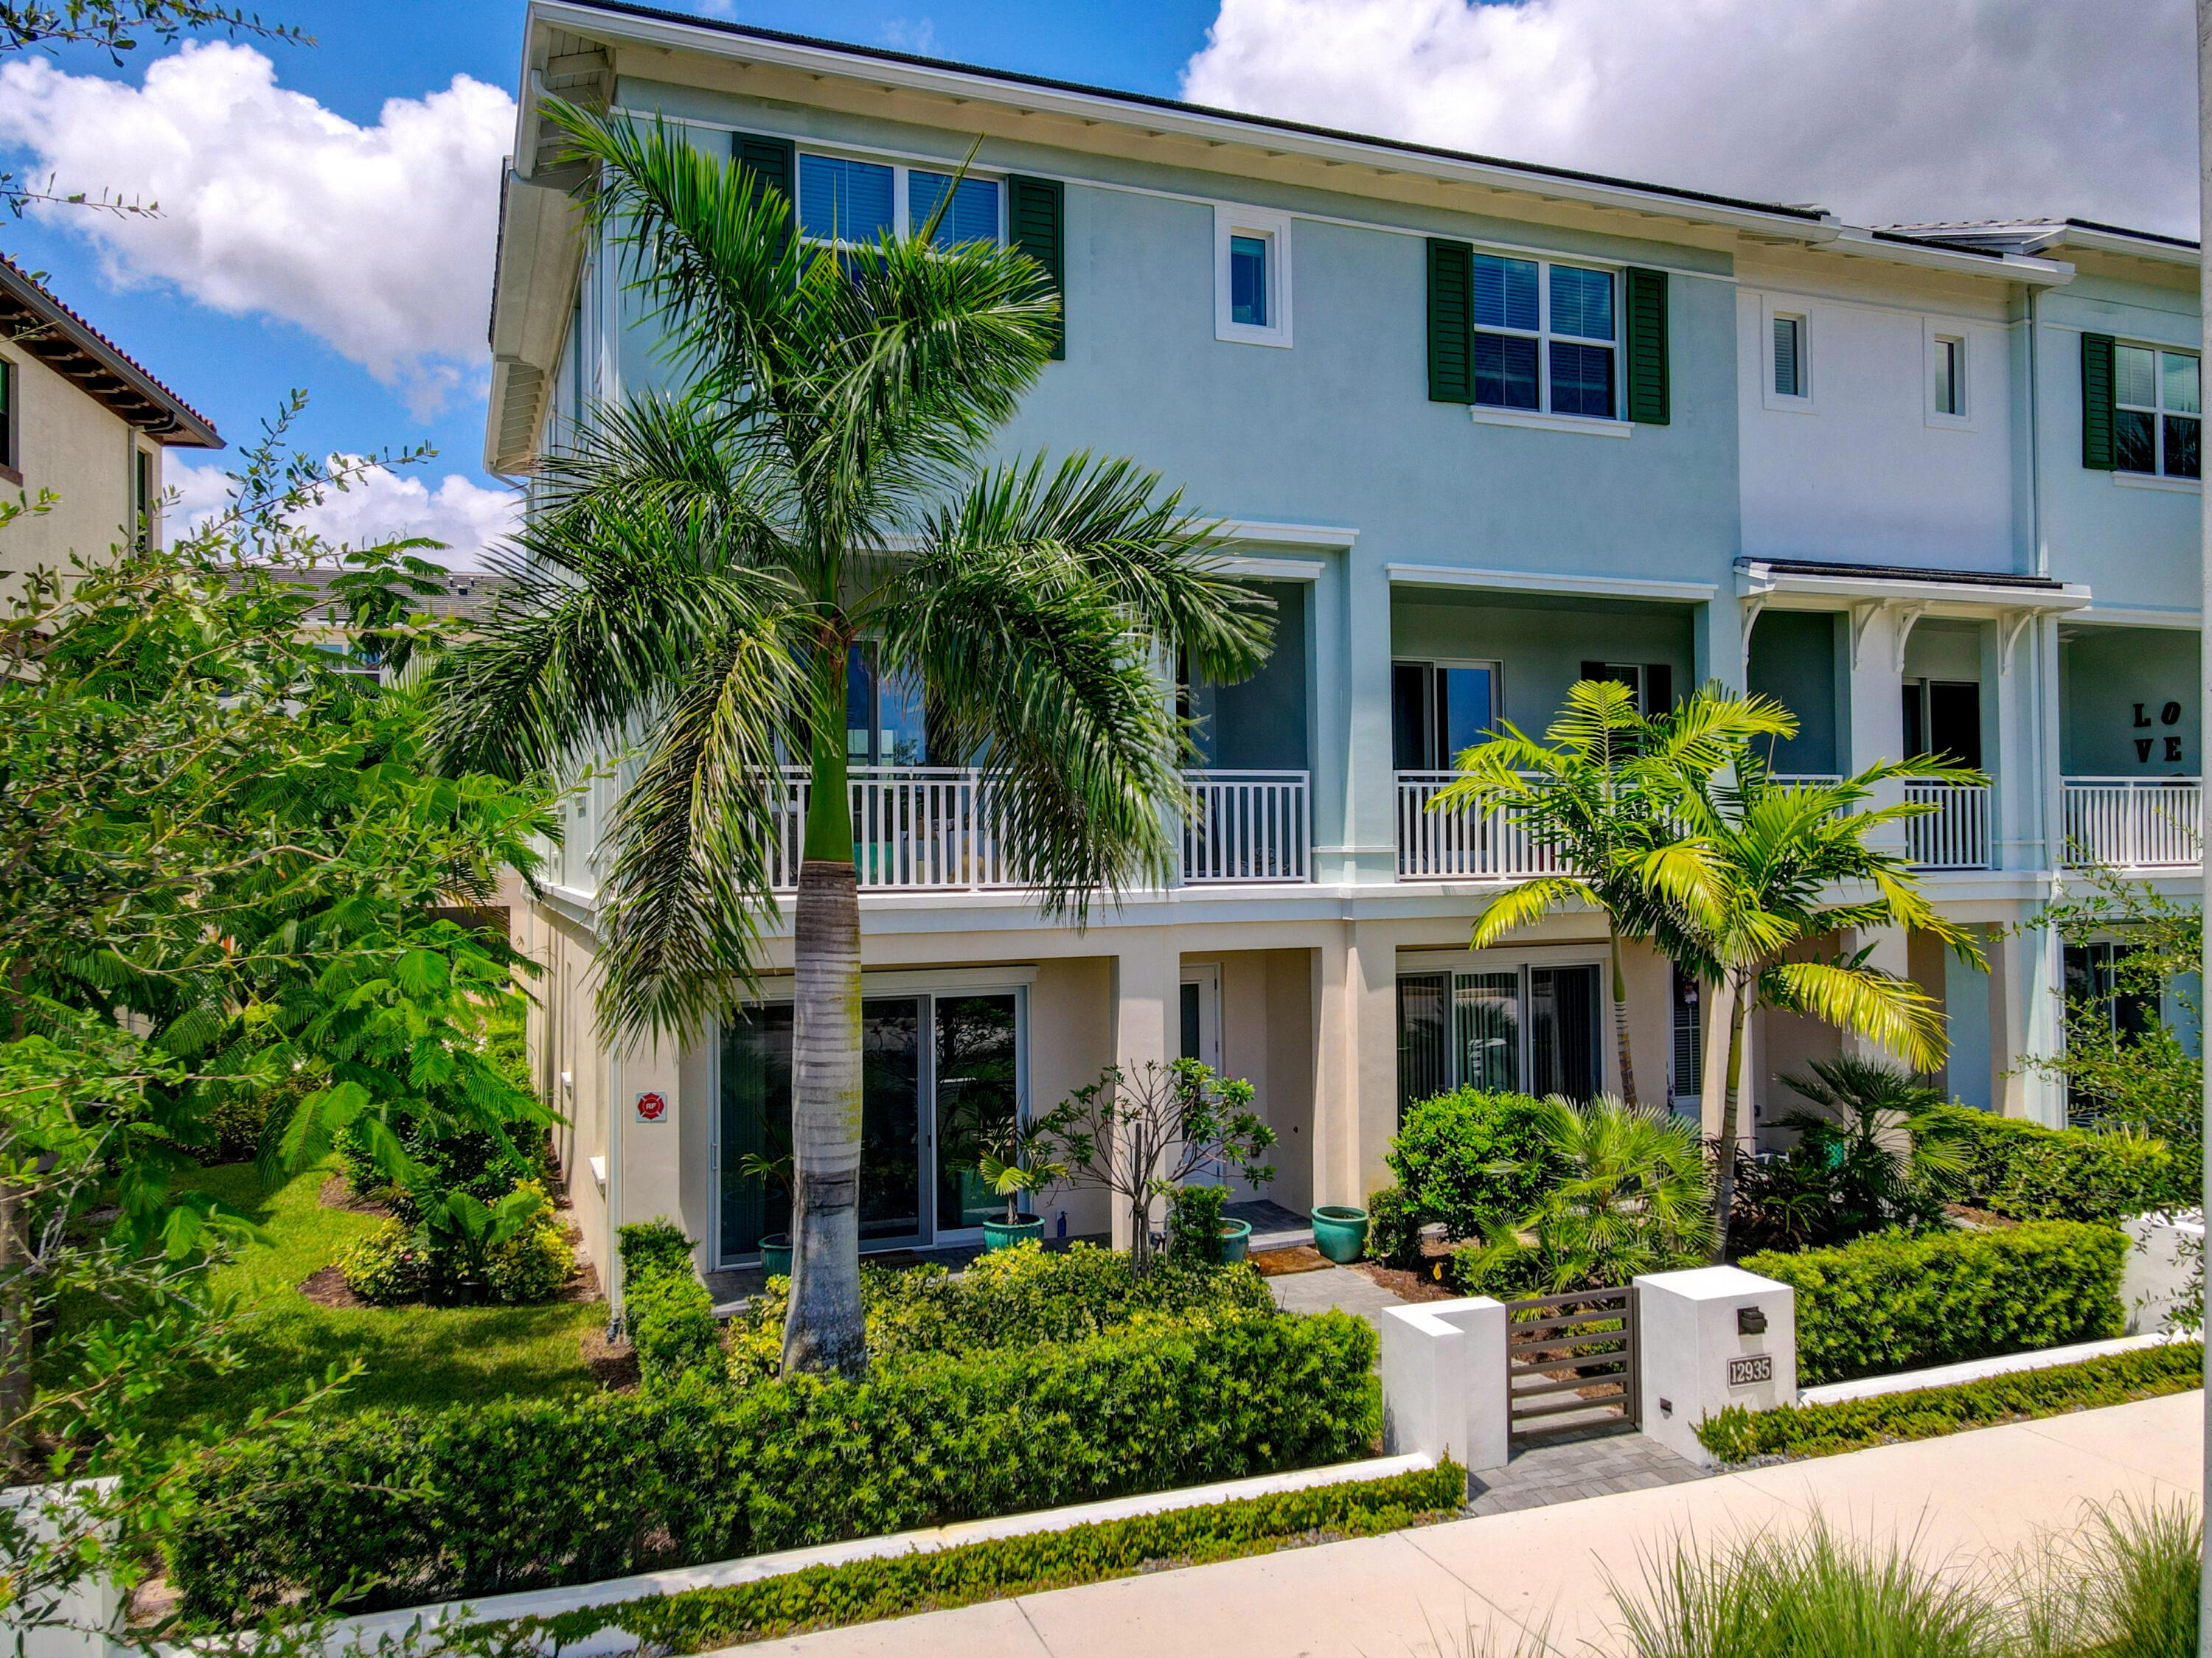 Fabulous END unit, lake view townhouse with high end upgrades throughout. UV light air sanitizing system, backsplash, under-kitchen cabinet lighting, wine cooler with extended kitchen counter/cabinets and double trash can cabinet. Upgraded floor to ceiling tiled bathroom  & fixtures & Toto toilets. Wood like Tiles in main area and gray color carpet in bedrooms. Rent includes upgraded window treatment, dimmable light fixtures, ceiling fans, security home alarm, pest control, AC maint, cable, internet and lawn care. 2 XL walk-in closets. Den and full bath on first fl. EXTREMELY low energy bills. Easy access to 95 & FL Turnpike. Few miles to PBI airport and beaches. WALKING distance to Benjamin High. Surrounded by golf courses. Spectacular clubhouse, basket ball court, fitness center & pool